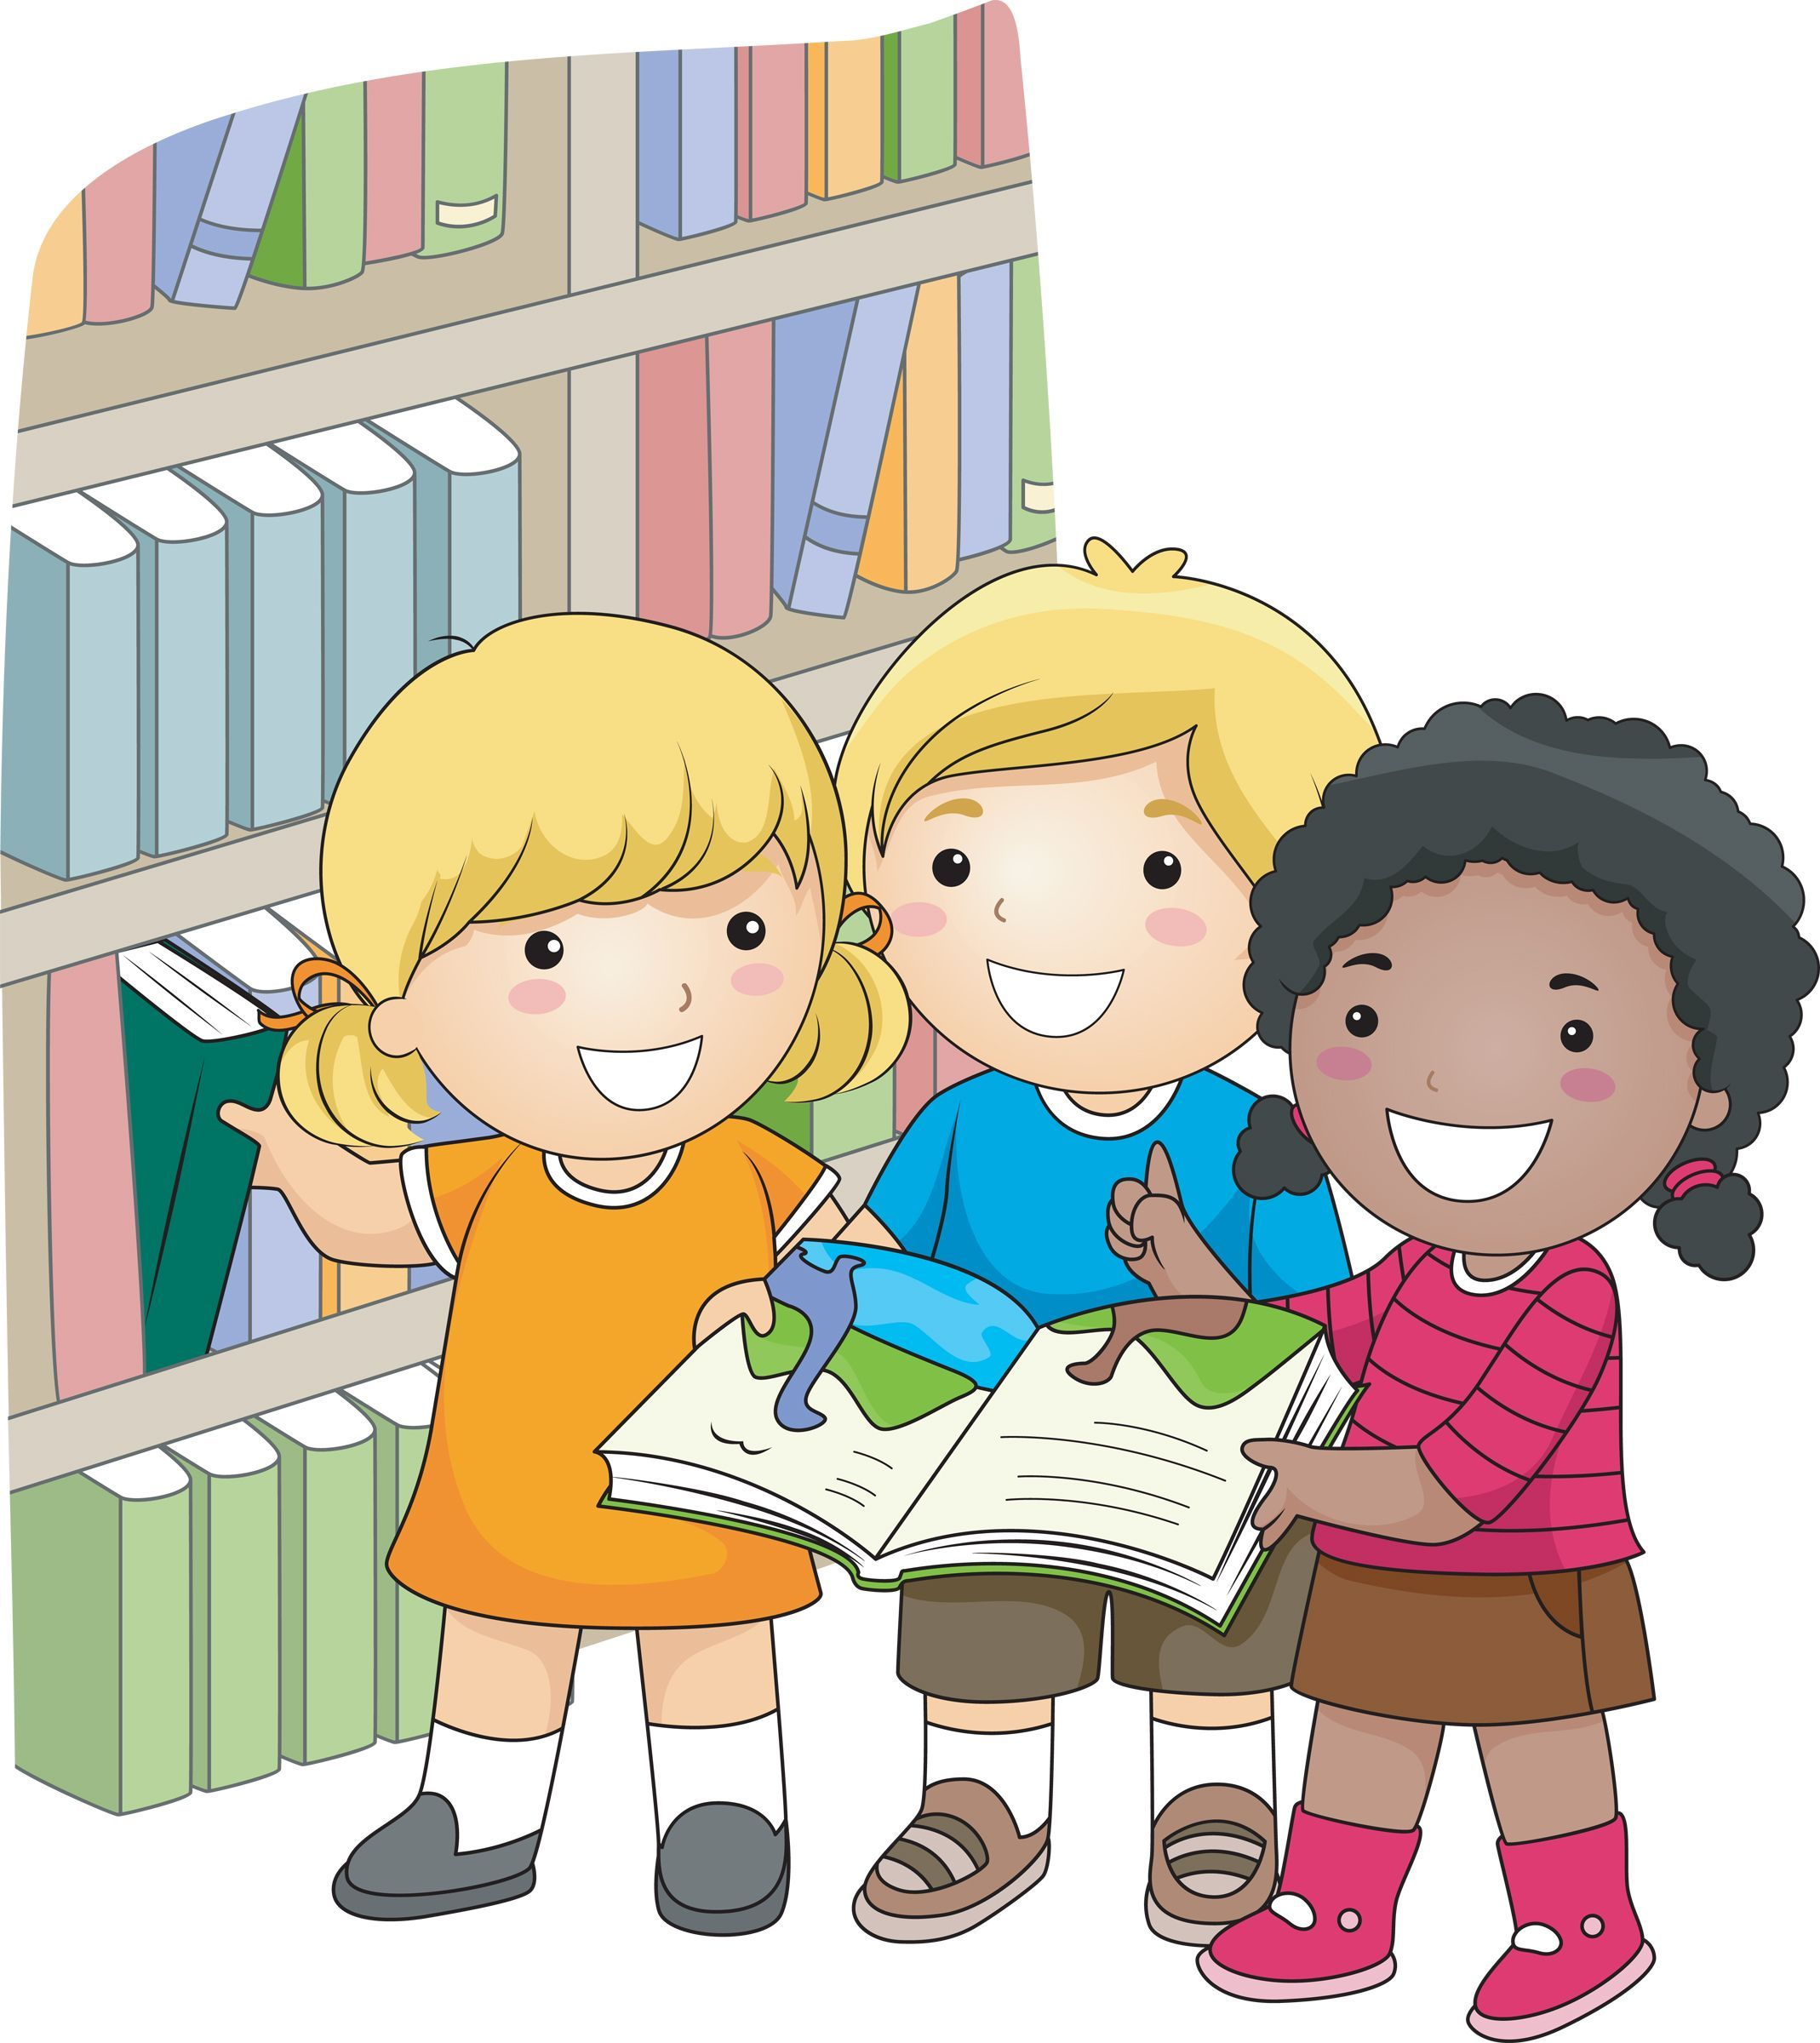 Child working clipart 4 » Clipart Portal.